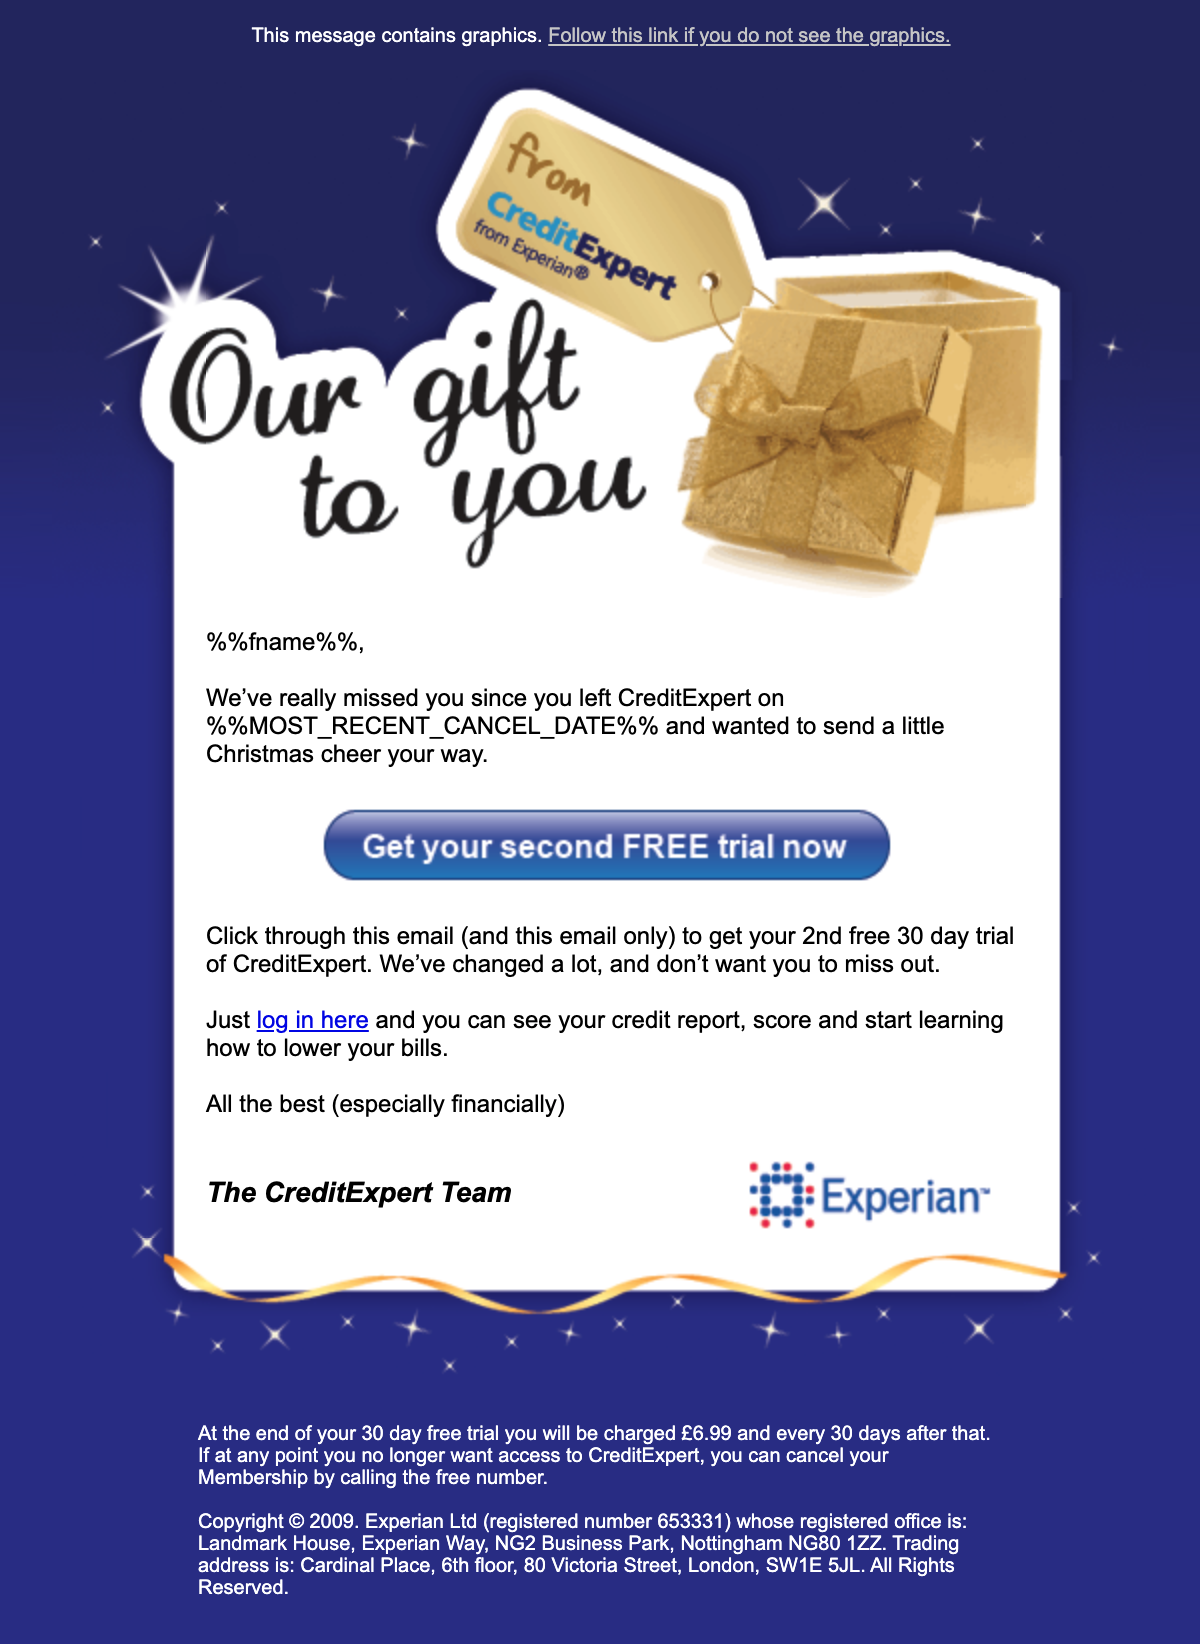 Lily Worth Experian Email 2009